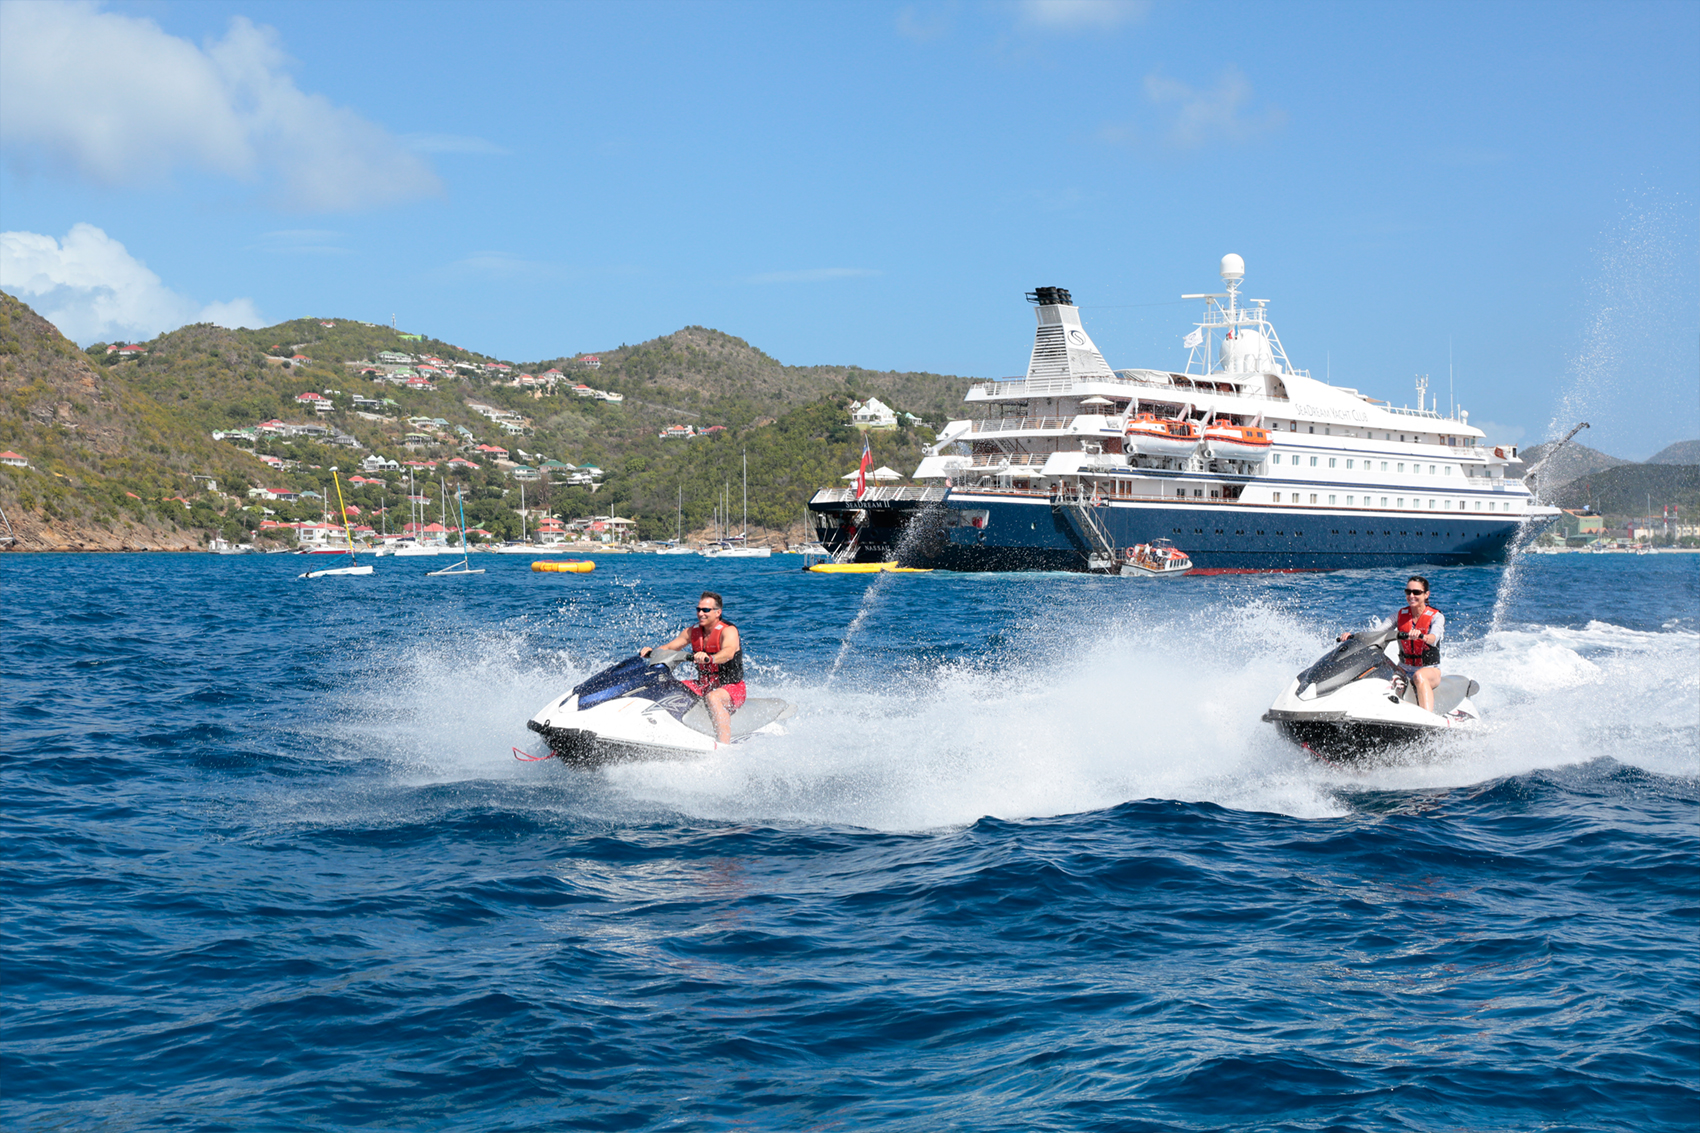 Cruisers riding jet skis wwith a SeaDream ship in the background